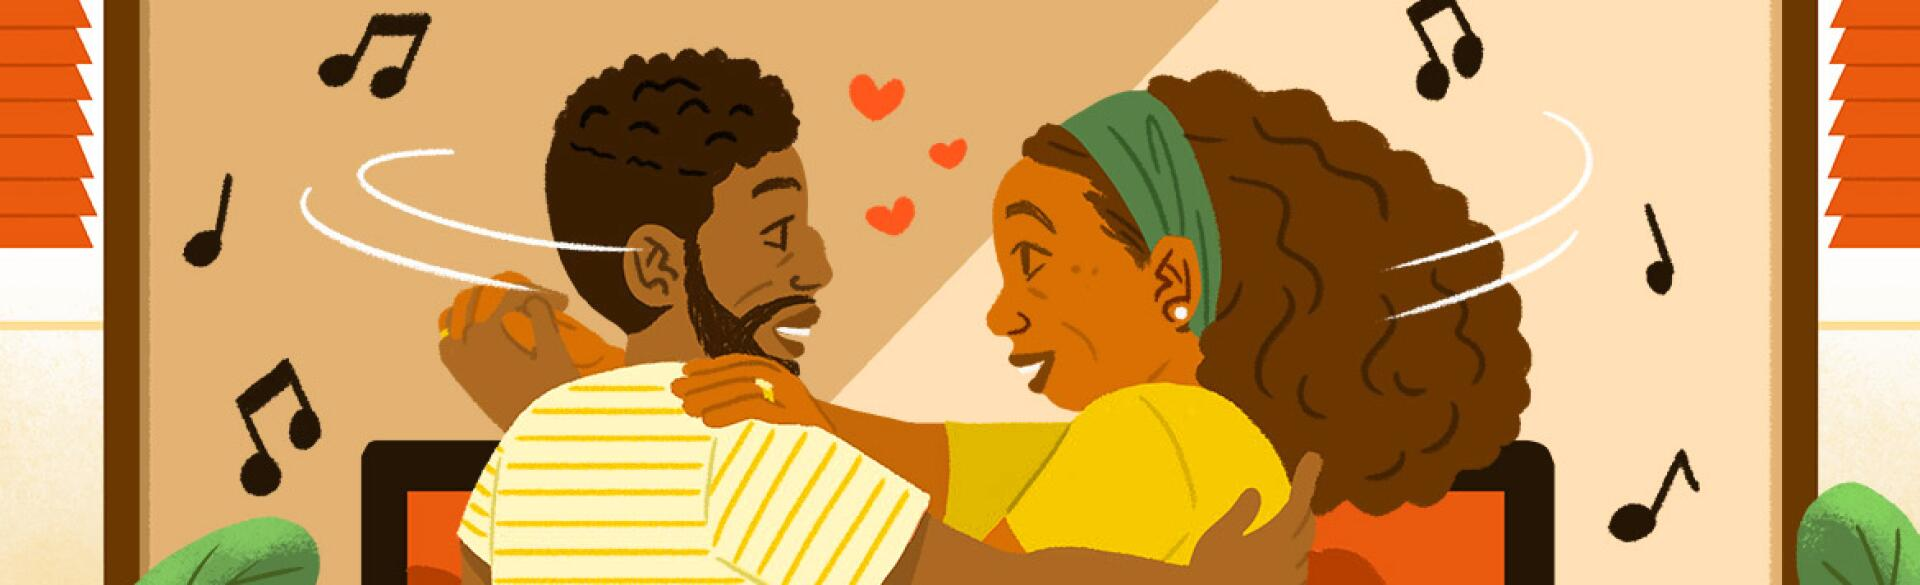 illustration_of_couple_dancing_social_distance_dating_by_shannon_wright_1440x584.jpg